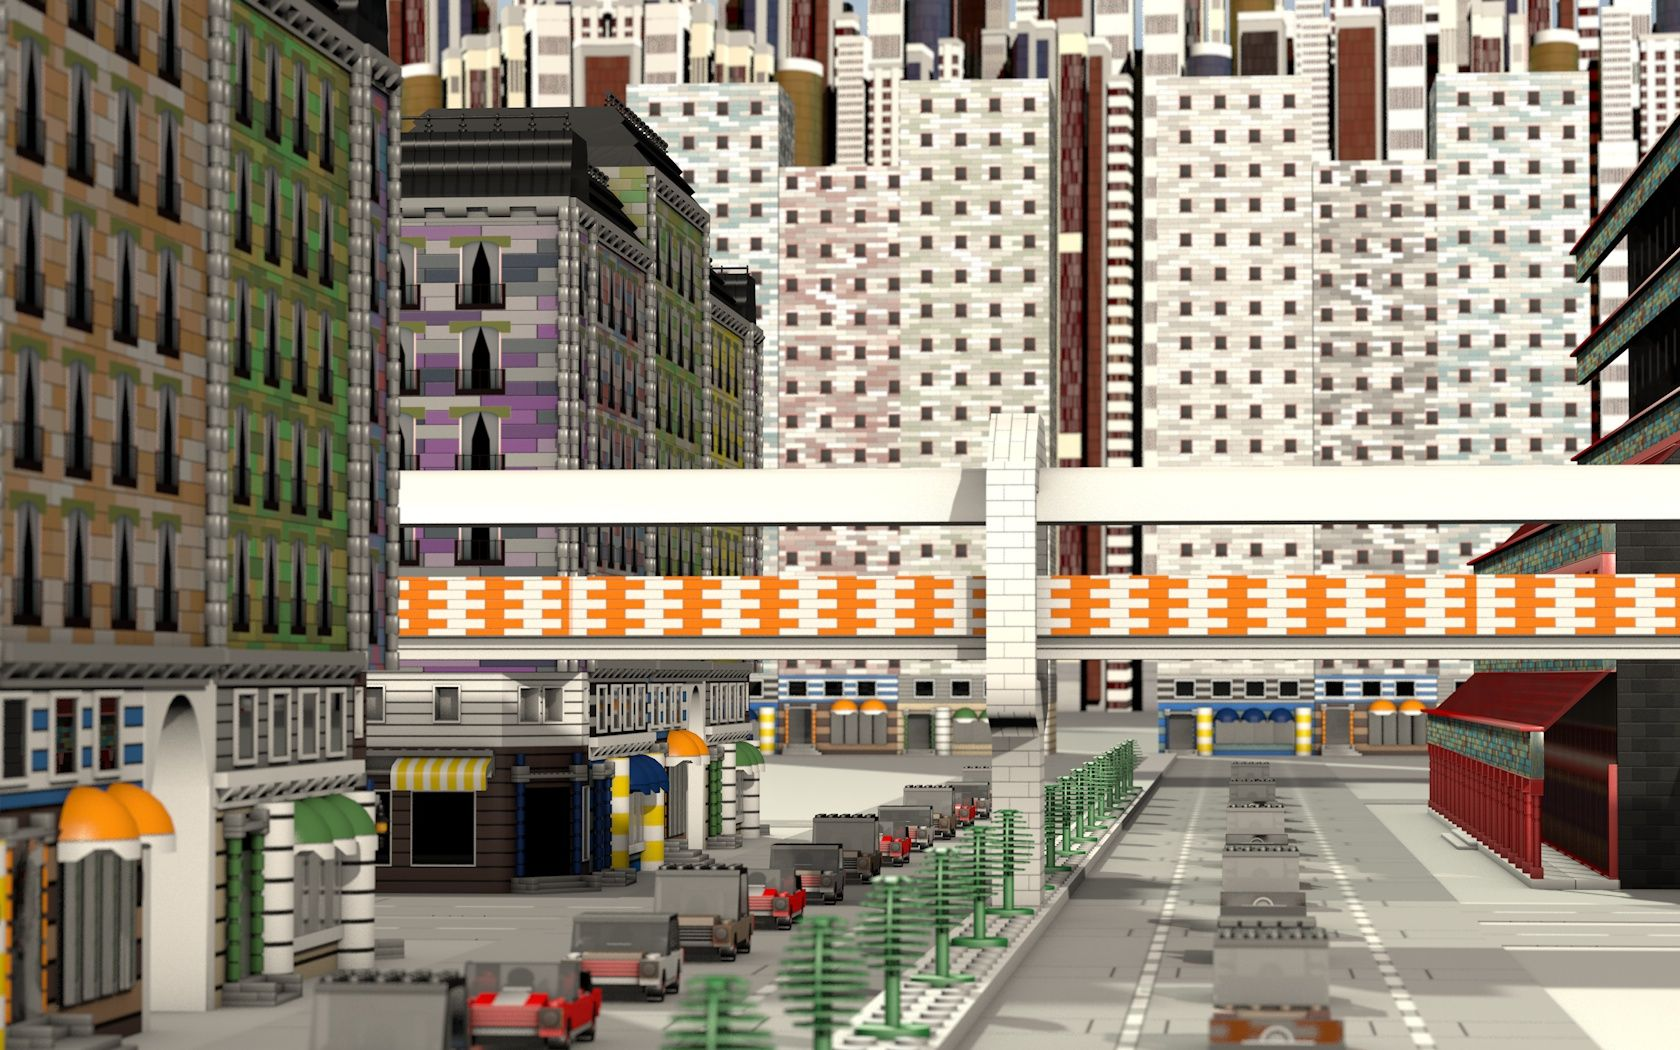 Huge Lego City made in